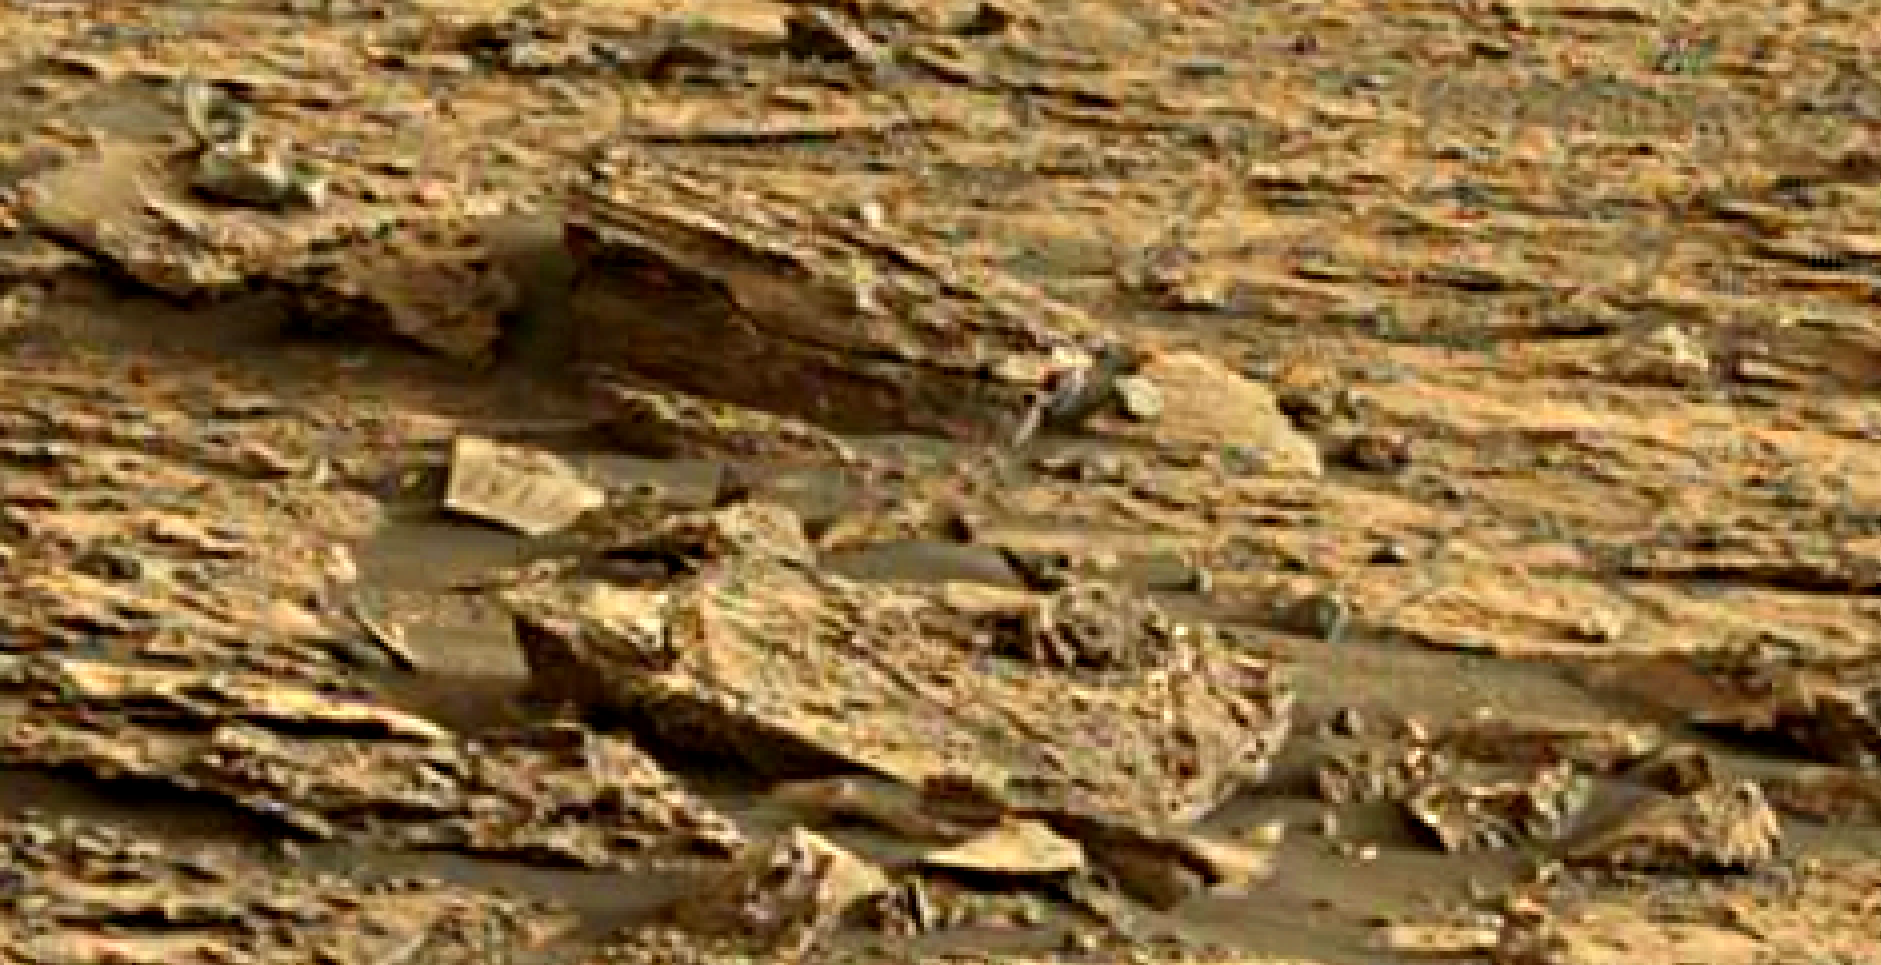 mars-sol-1448-anomaly-artifacts-18-was-life-on-mars